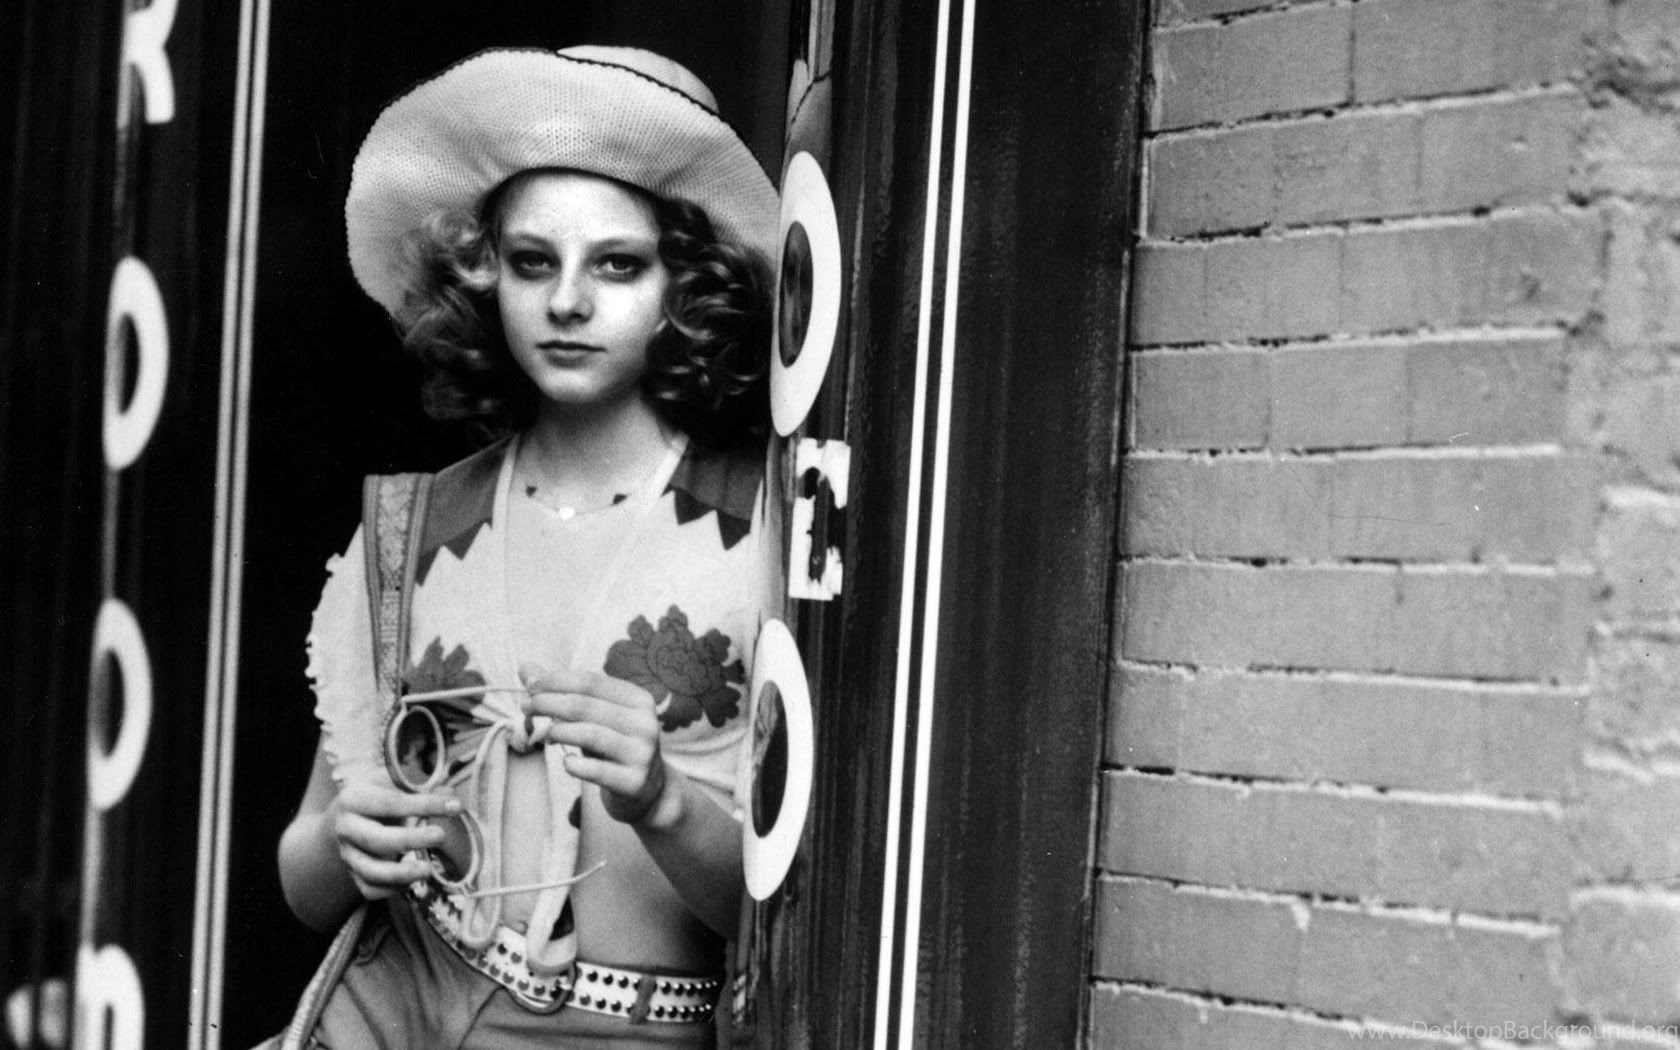 A twelve-year old Jodie Foster as the prostitute Iris in Taxi Driver (1976)